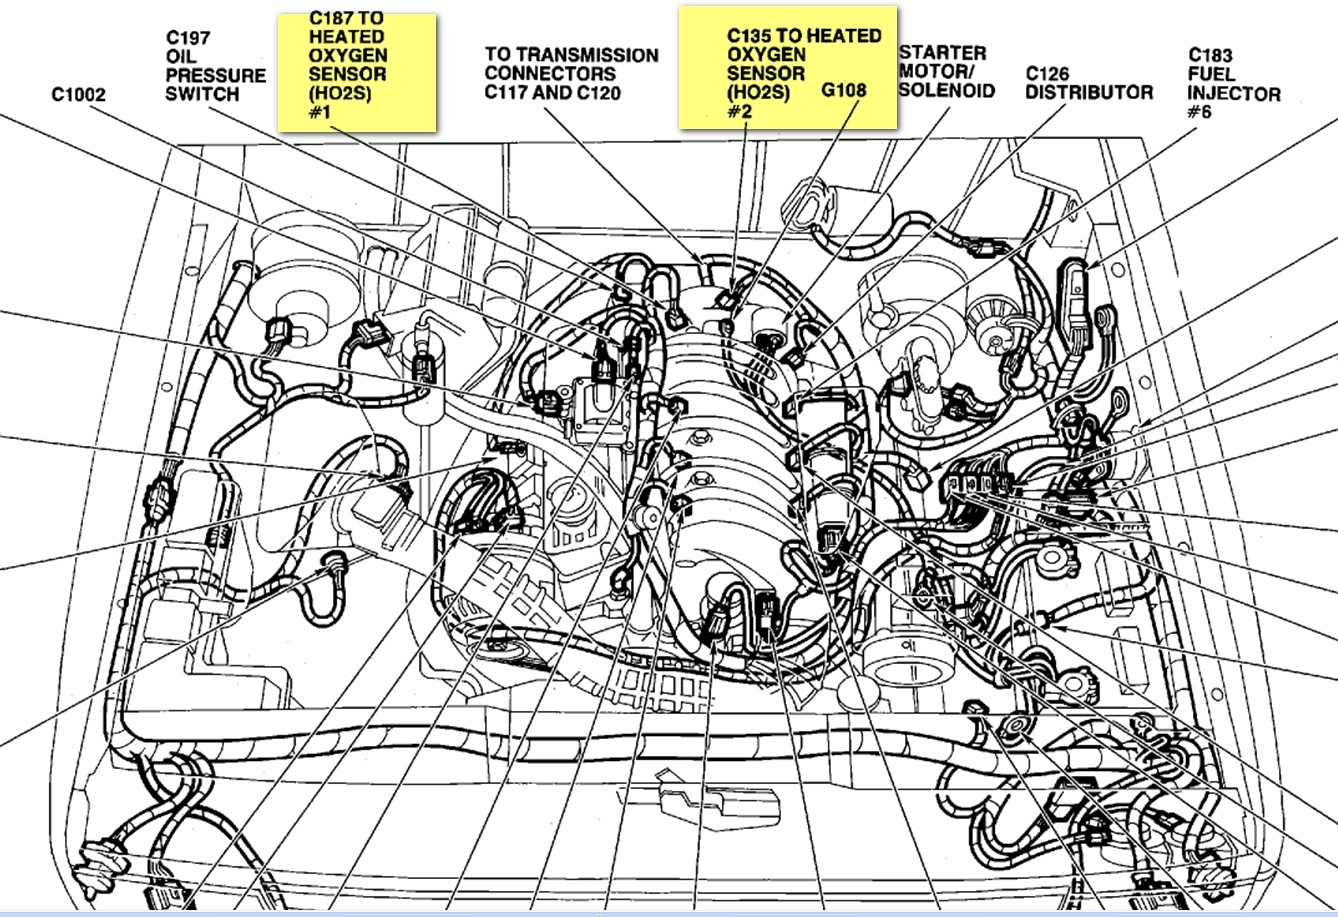 How To Test The Throttle Position Sensor 1 as well 1102720 Pcv Valve in addition P0401 besides Types Of Sensors In A Car additionally Dodge Ram 1500 Oxygen Sensor Location. on 1997 ford explorer idle air control valve